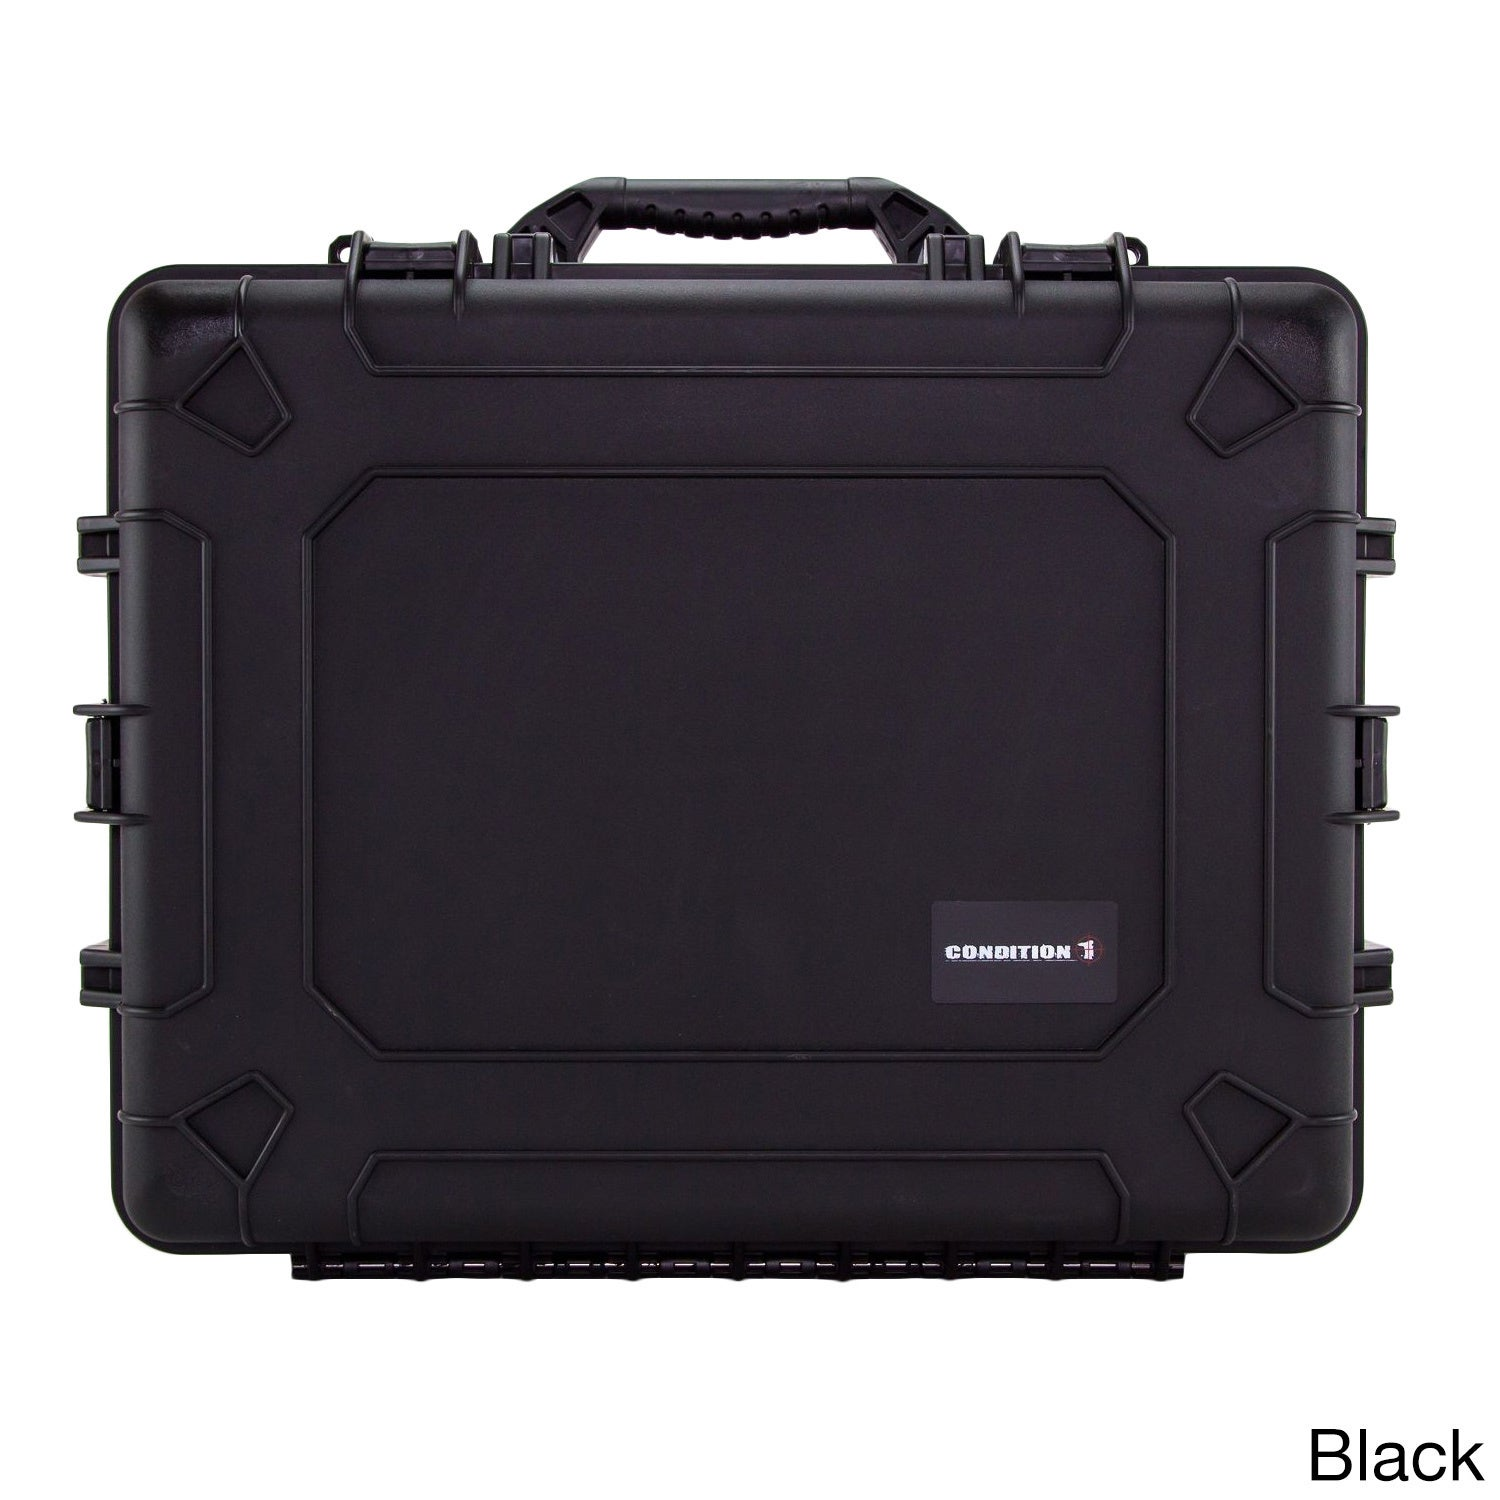 Royal Condition 1 #024 Airtight/ Watertight Case with Pic...